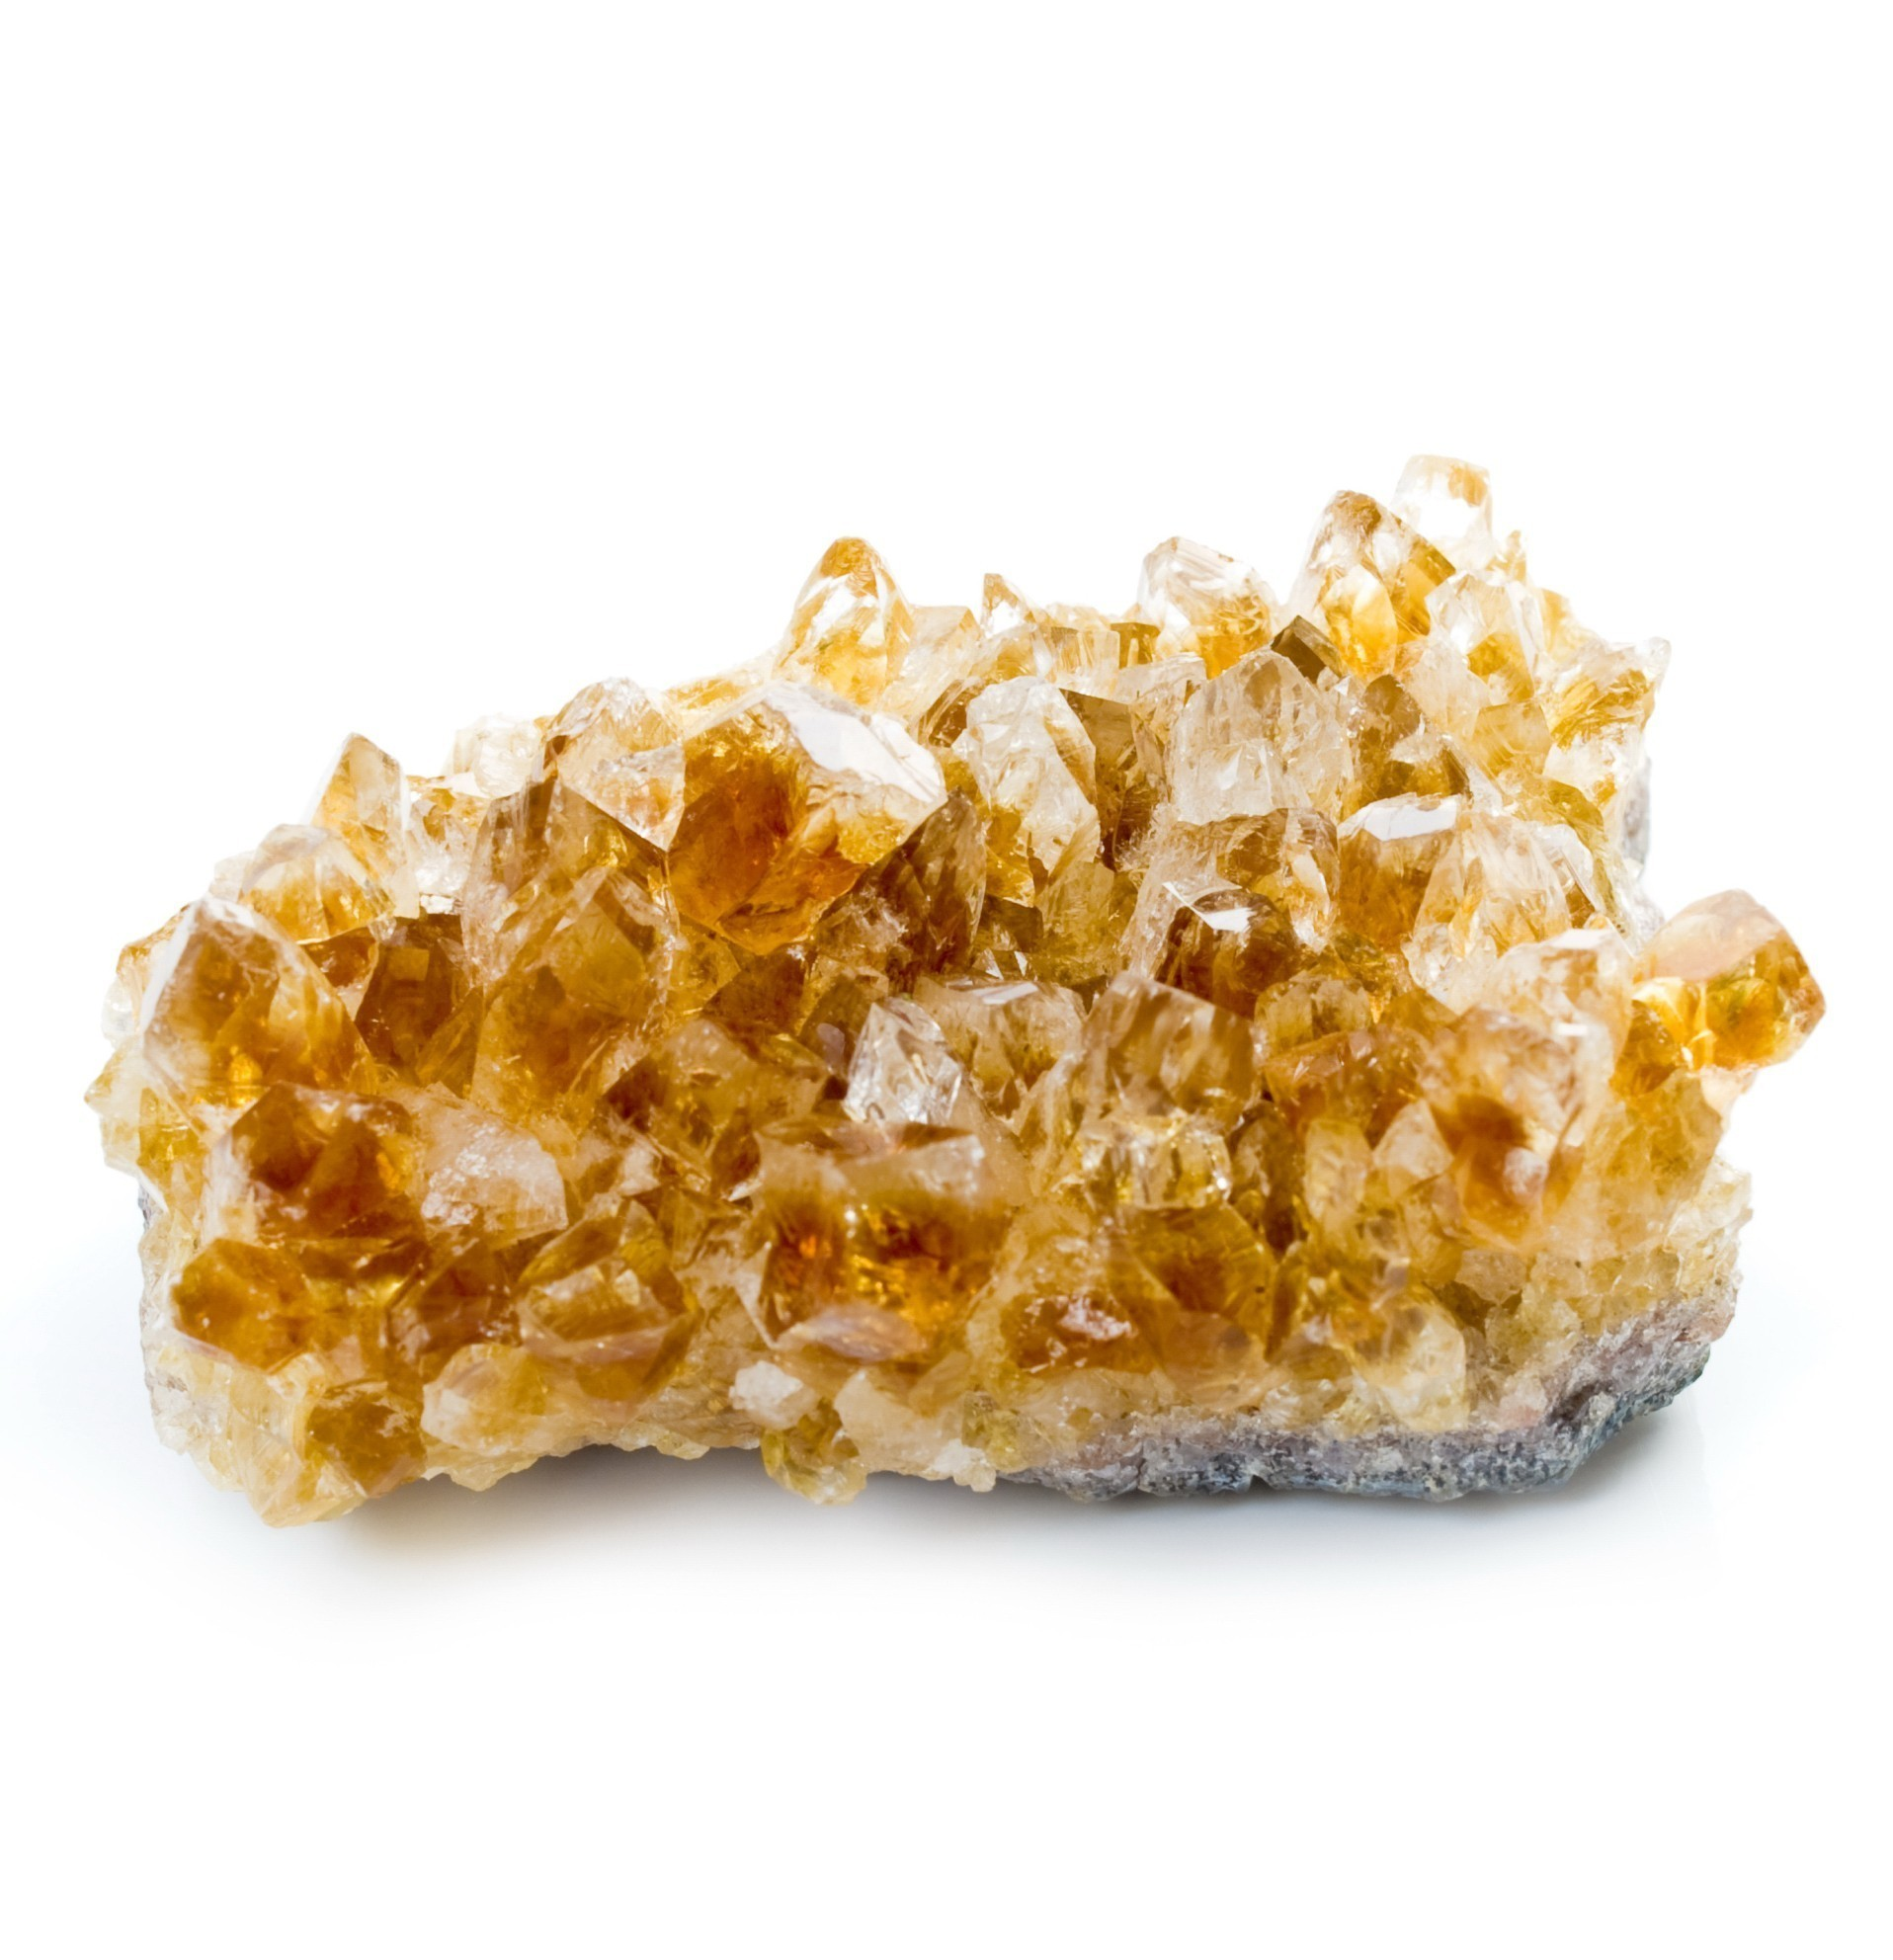 Citrine Cluster :: Metaphysical Properties Of Citrine For Luck, Money, Protection, Healing